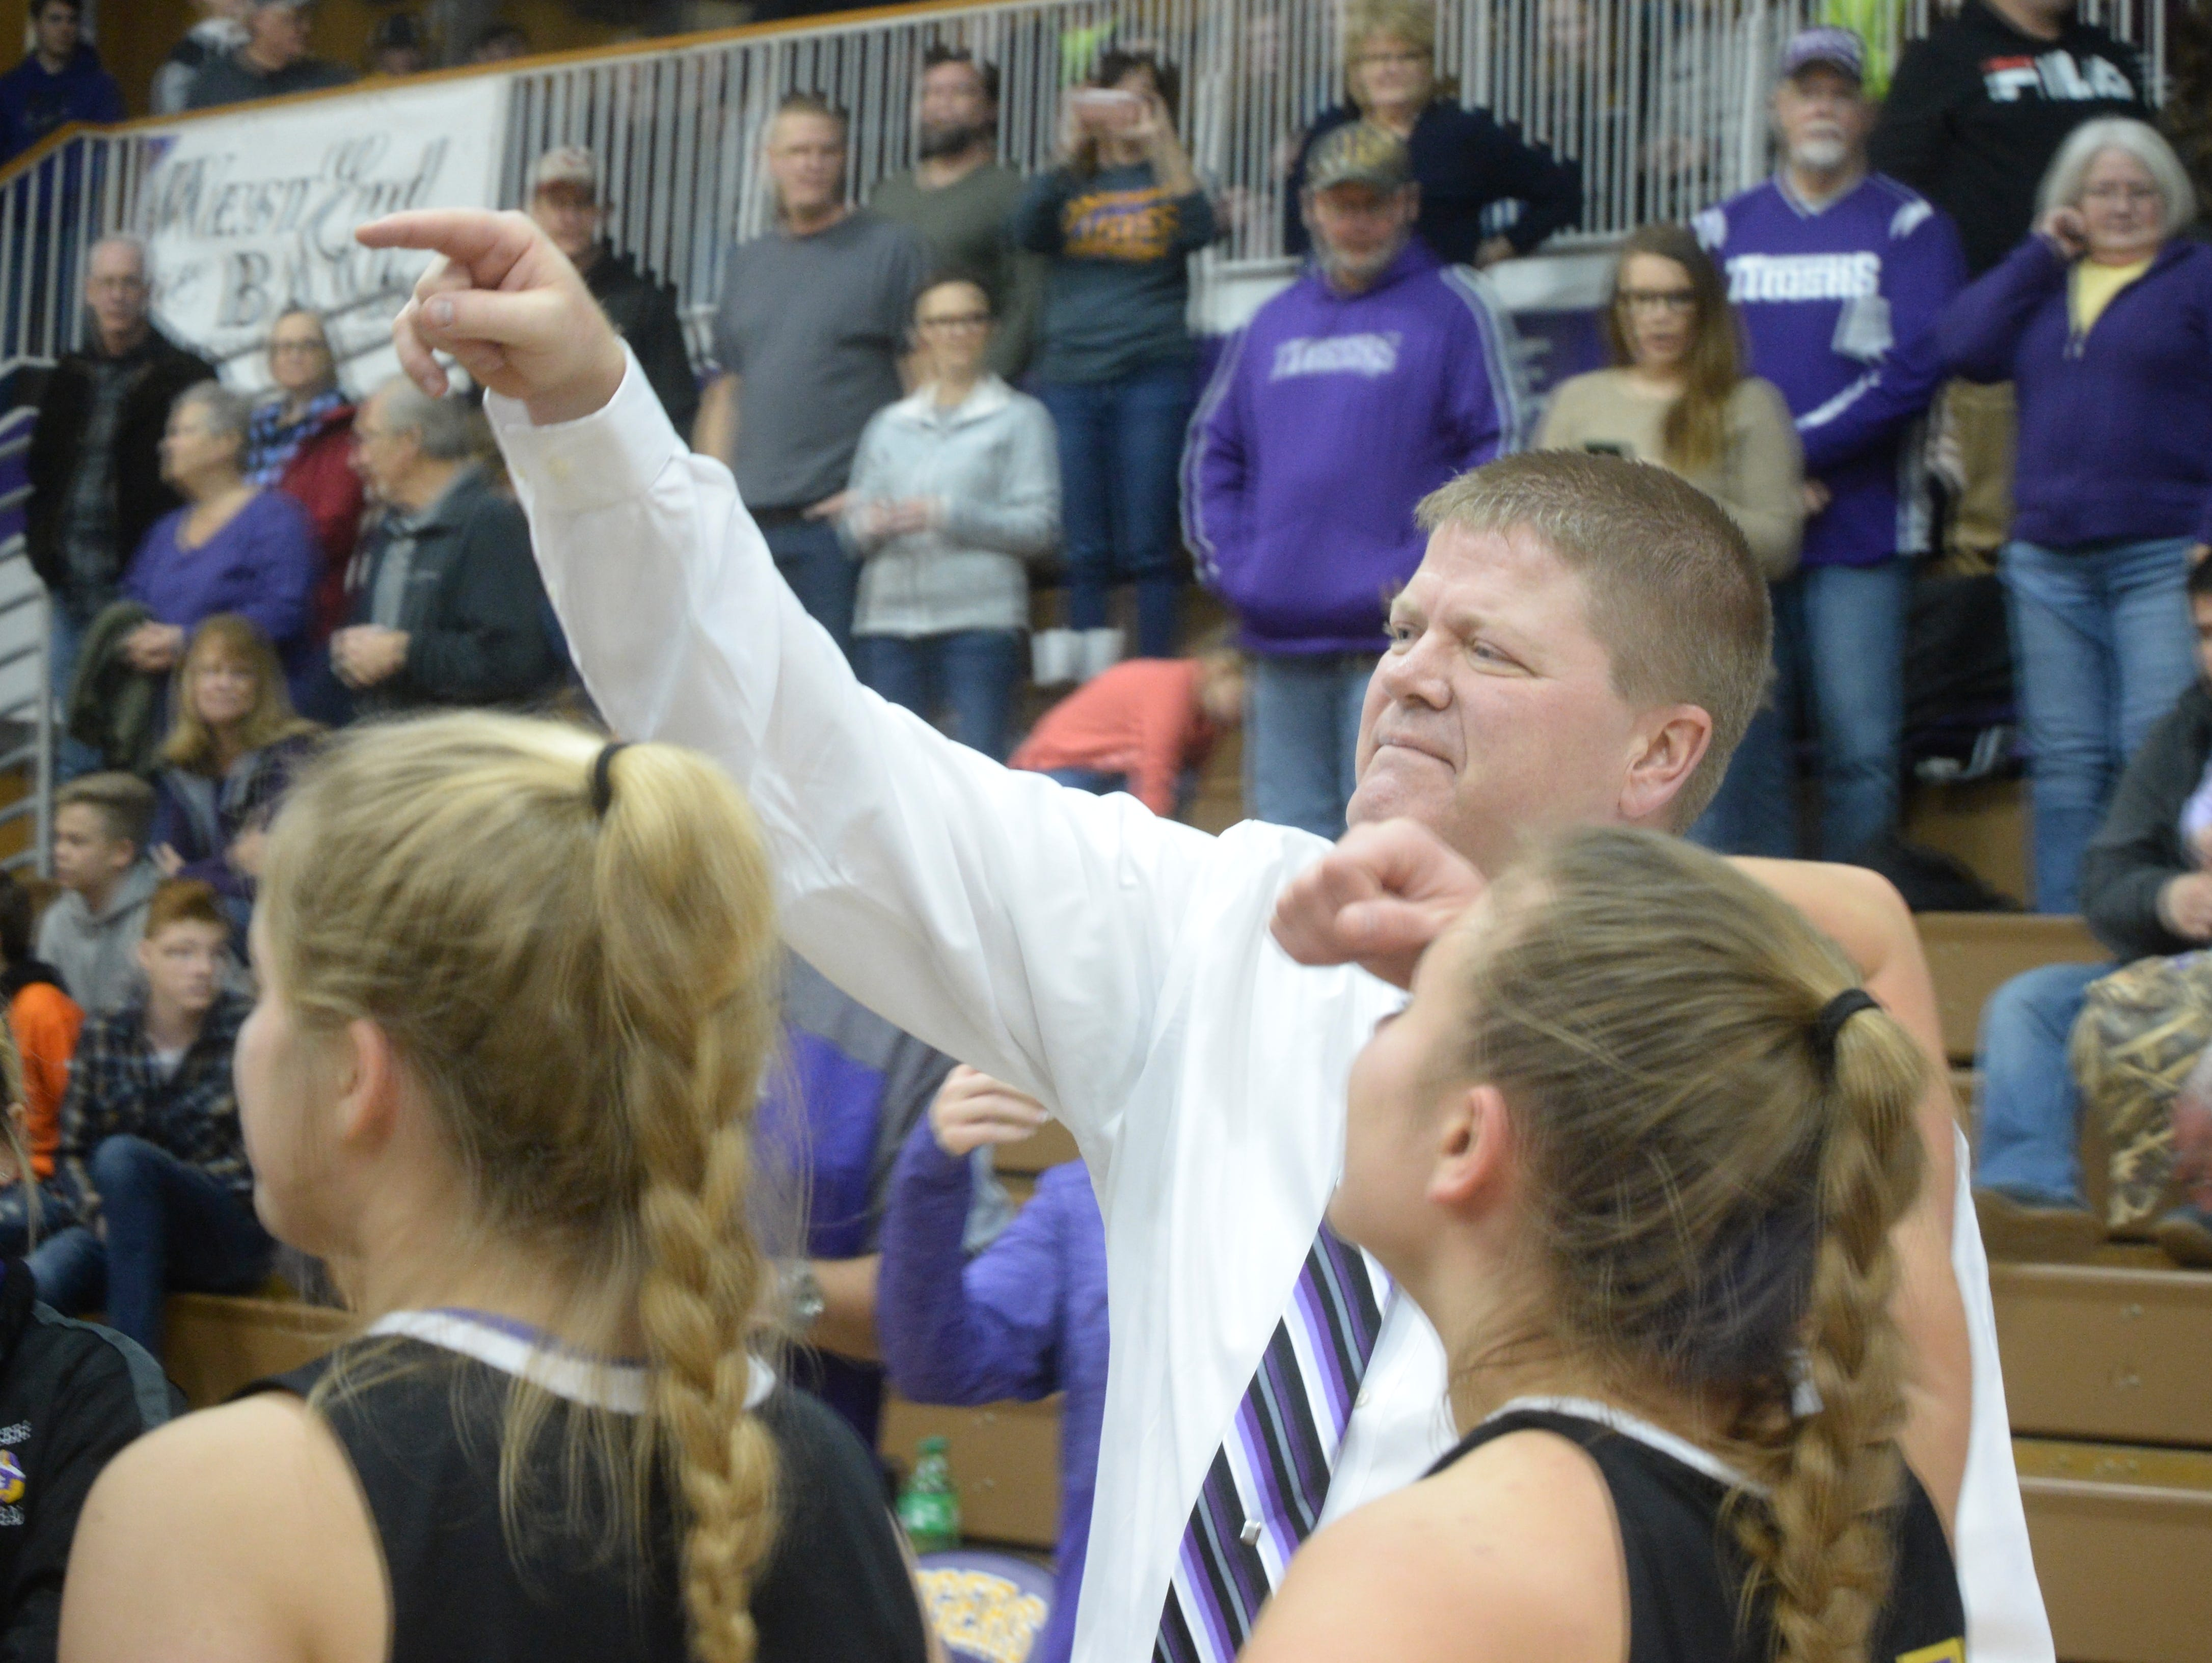 Hagerstown coach Chris Oliger celebrates during the Wayne County girls basketball championship at Hagerstown Saturday, Jan. 5, 2019. Hagerstown defeated Northeastern 37-35 to win the girls' title, and Northeastern beat Hagerstown 60-49 in the boys championship.